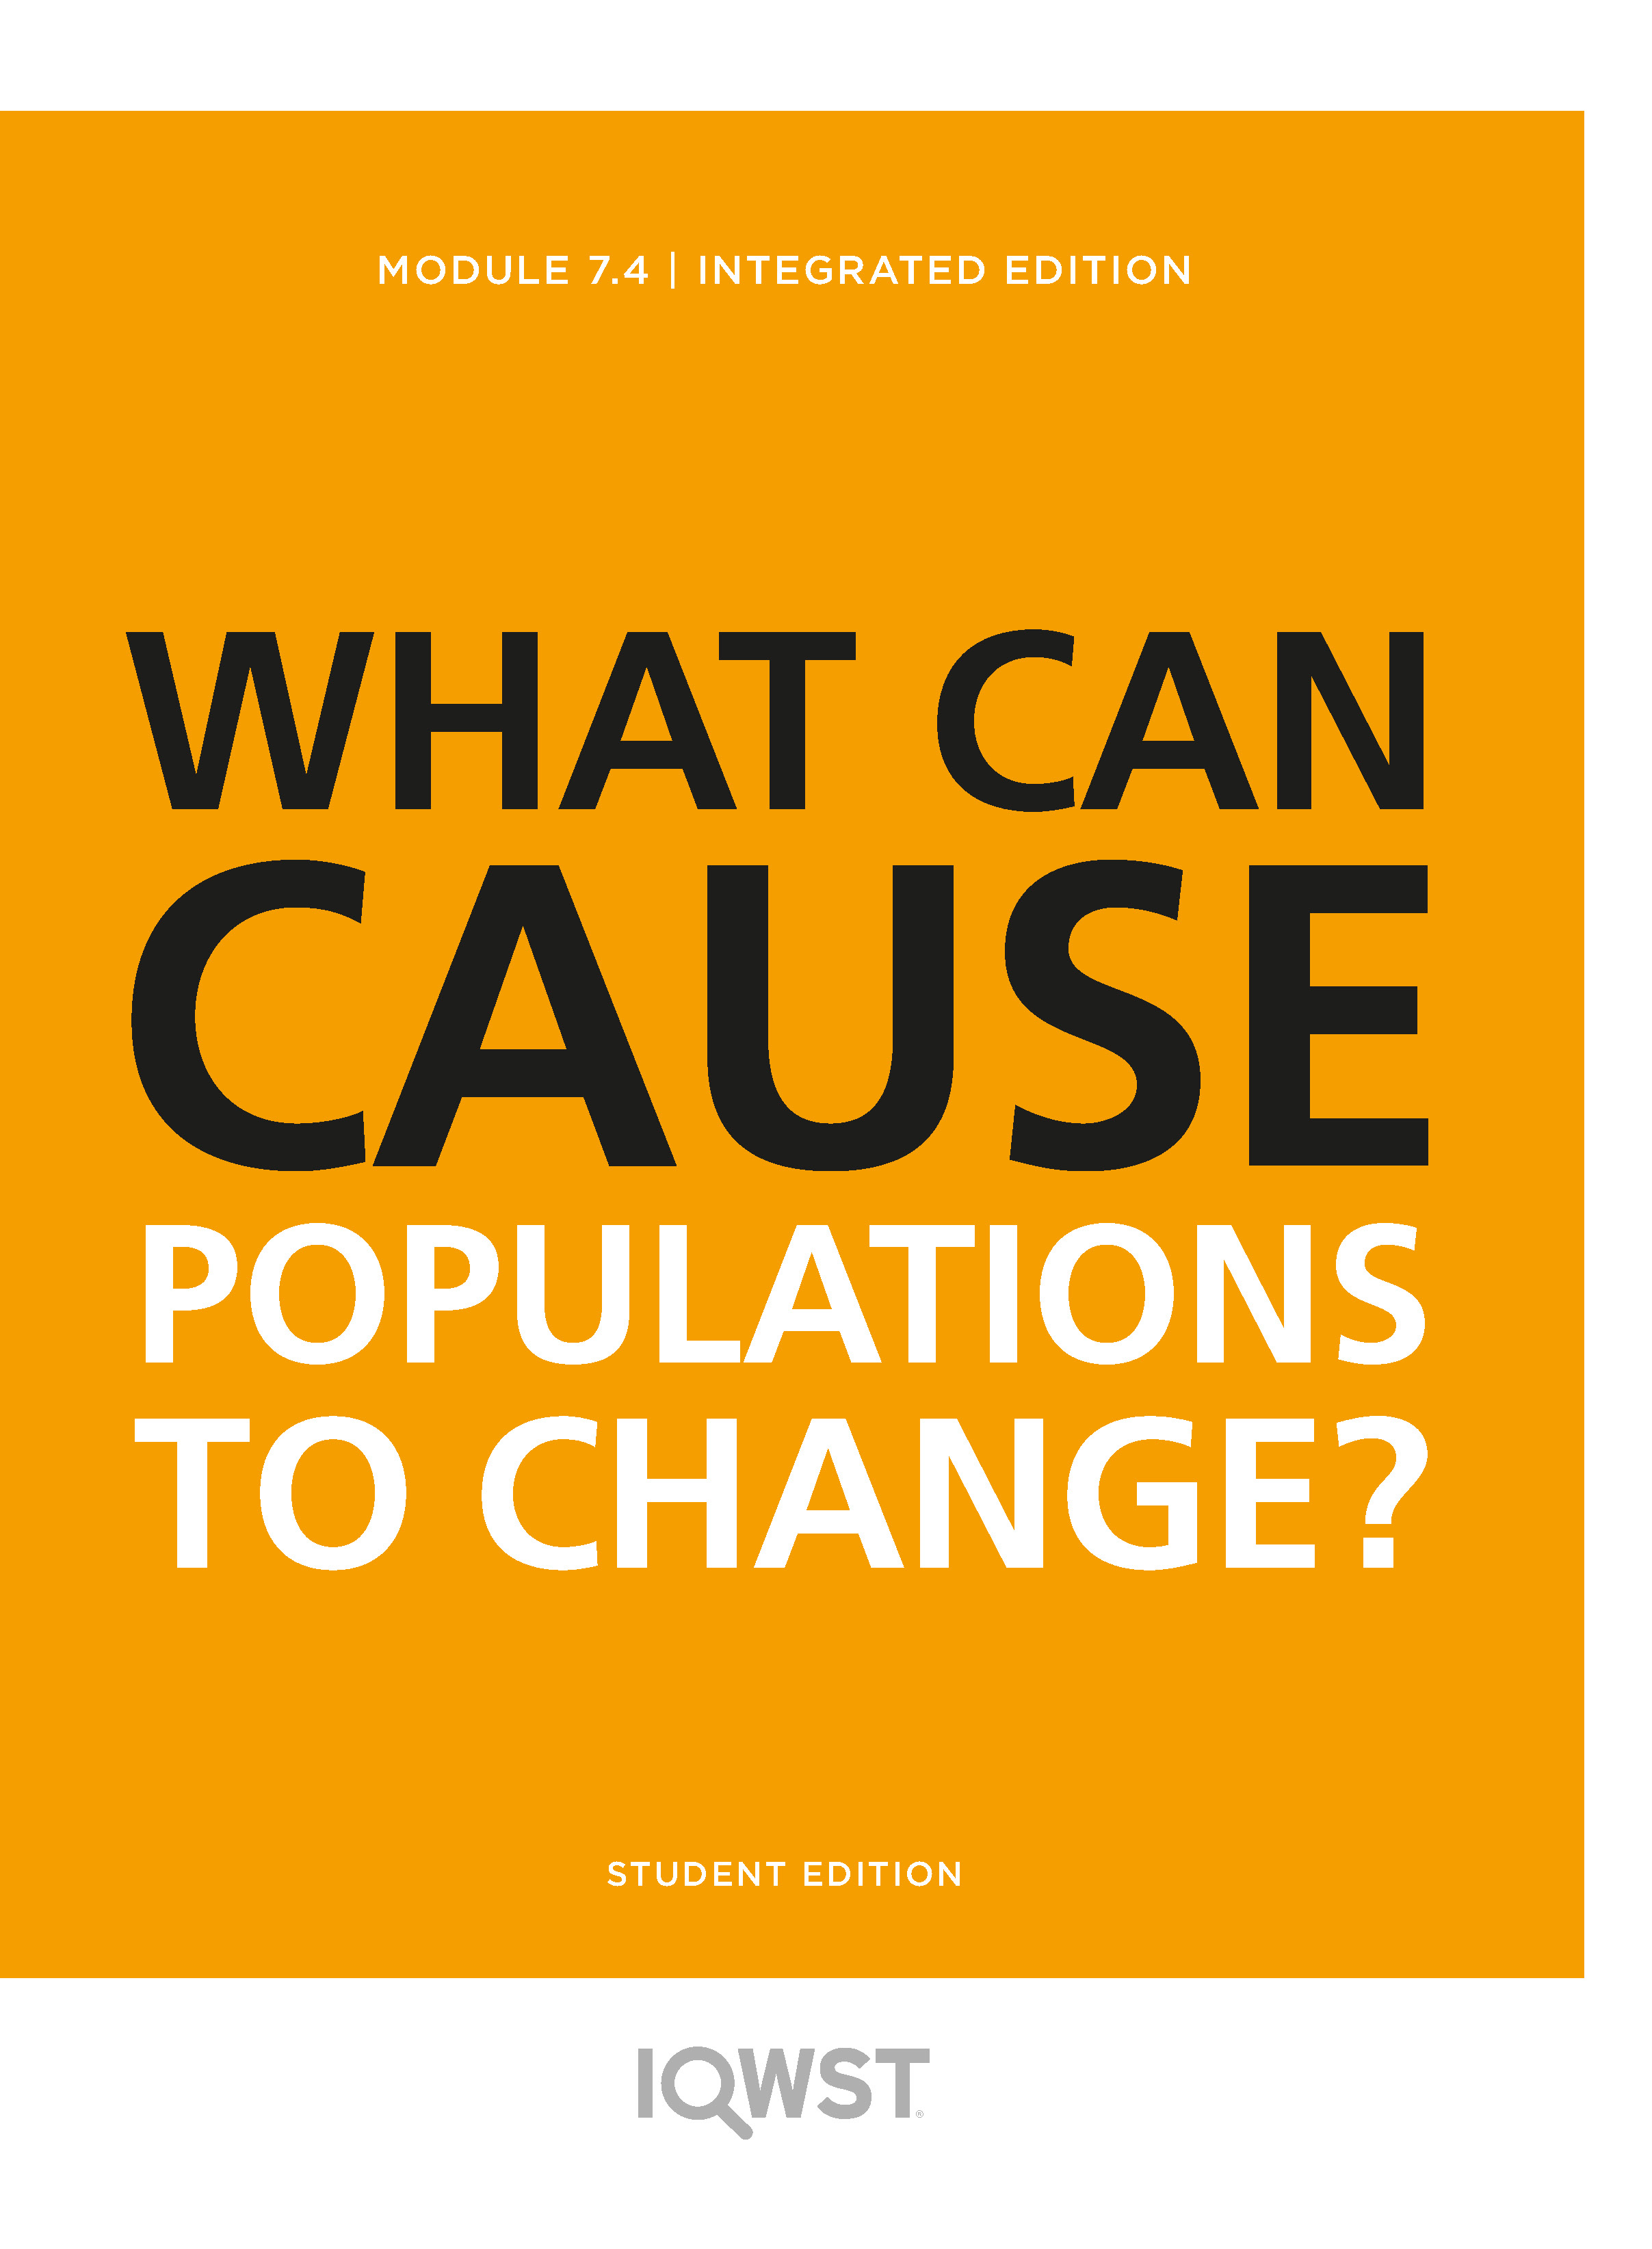 7.4 What Can Cause Populations to Change?